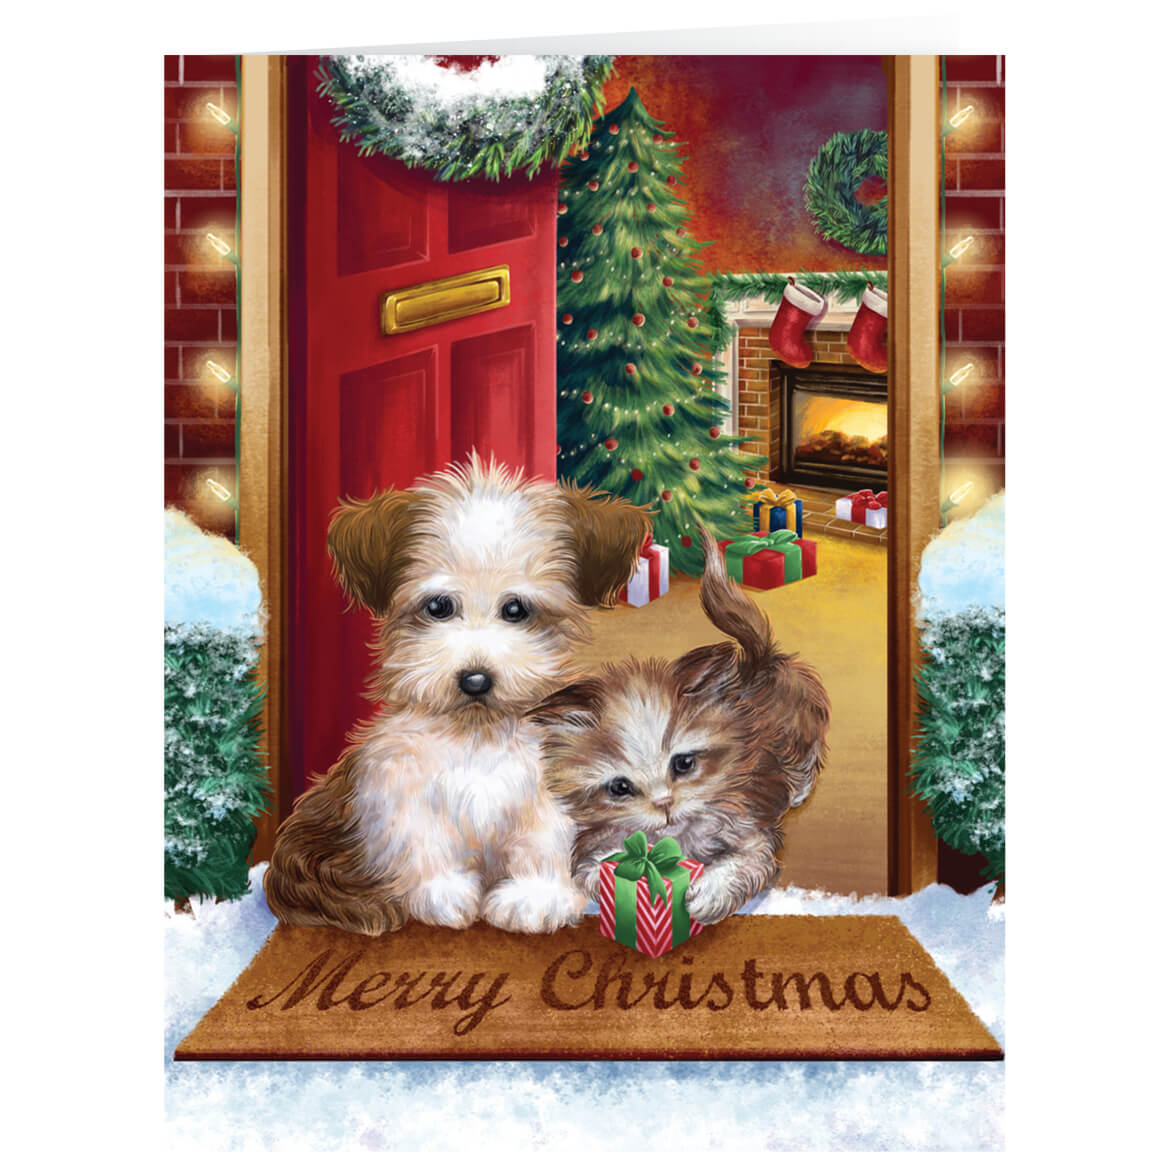 Kitten Christmas Cards.Personalized Puppy And Kitten Christmas Card Set Of 20